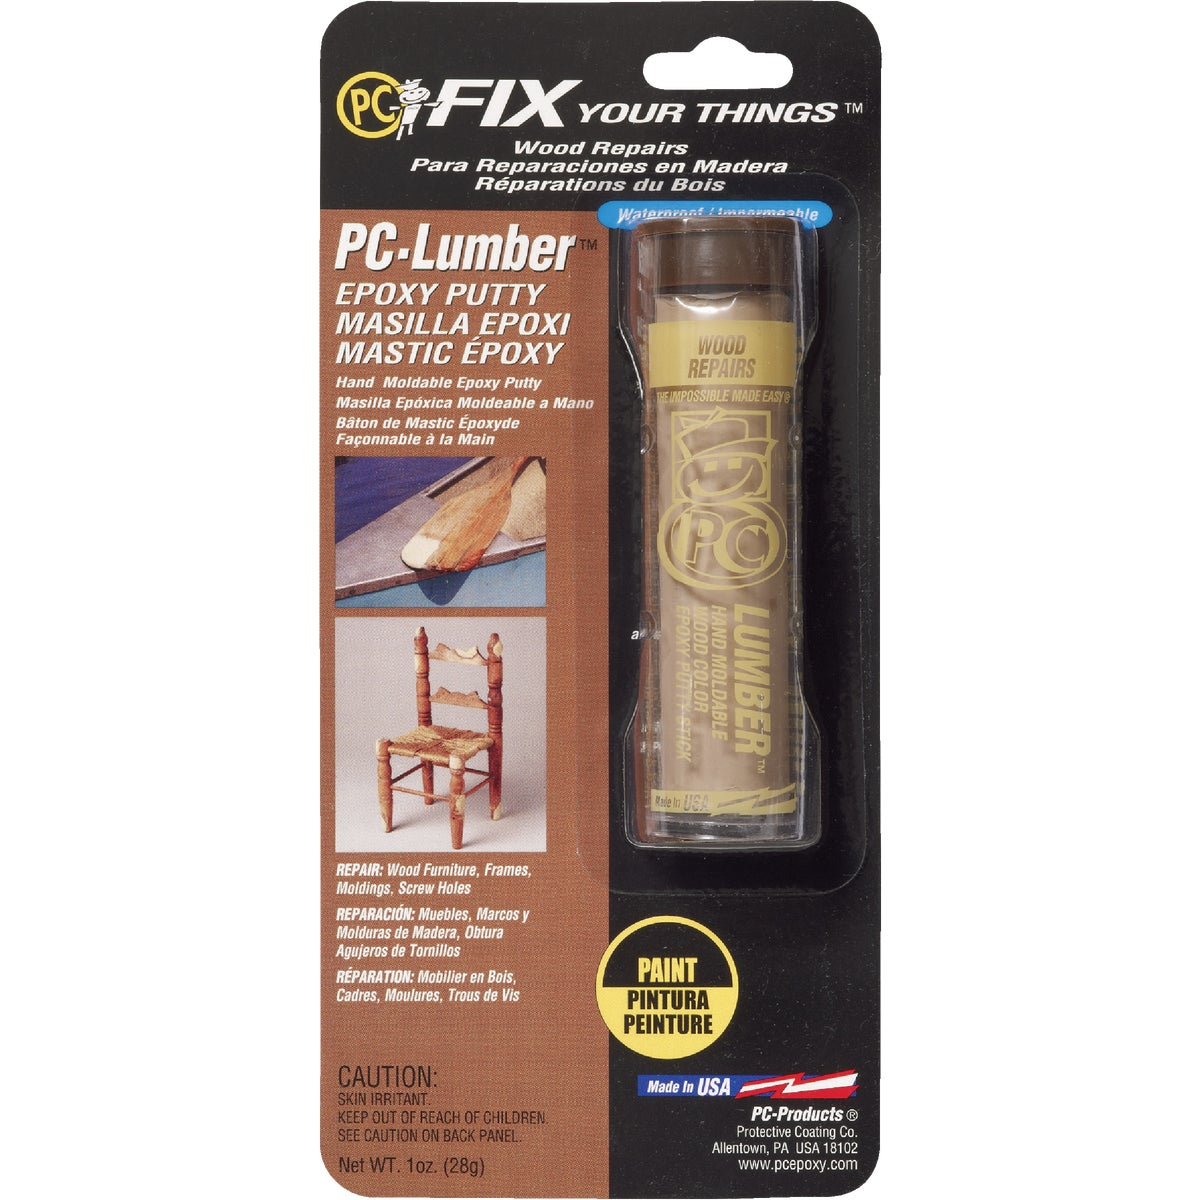 PC-LUMBER EPOXY PUTTY - PC-LUMBER by Protective Coating